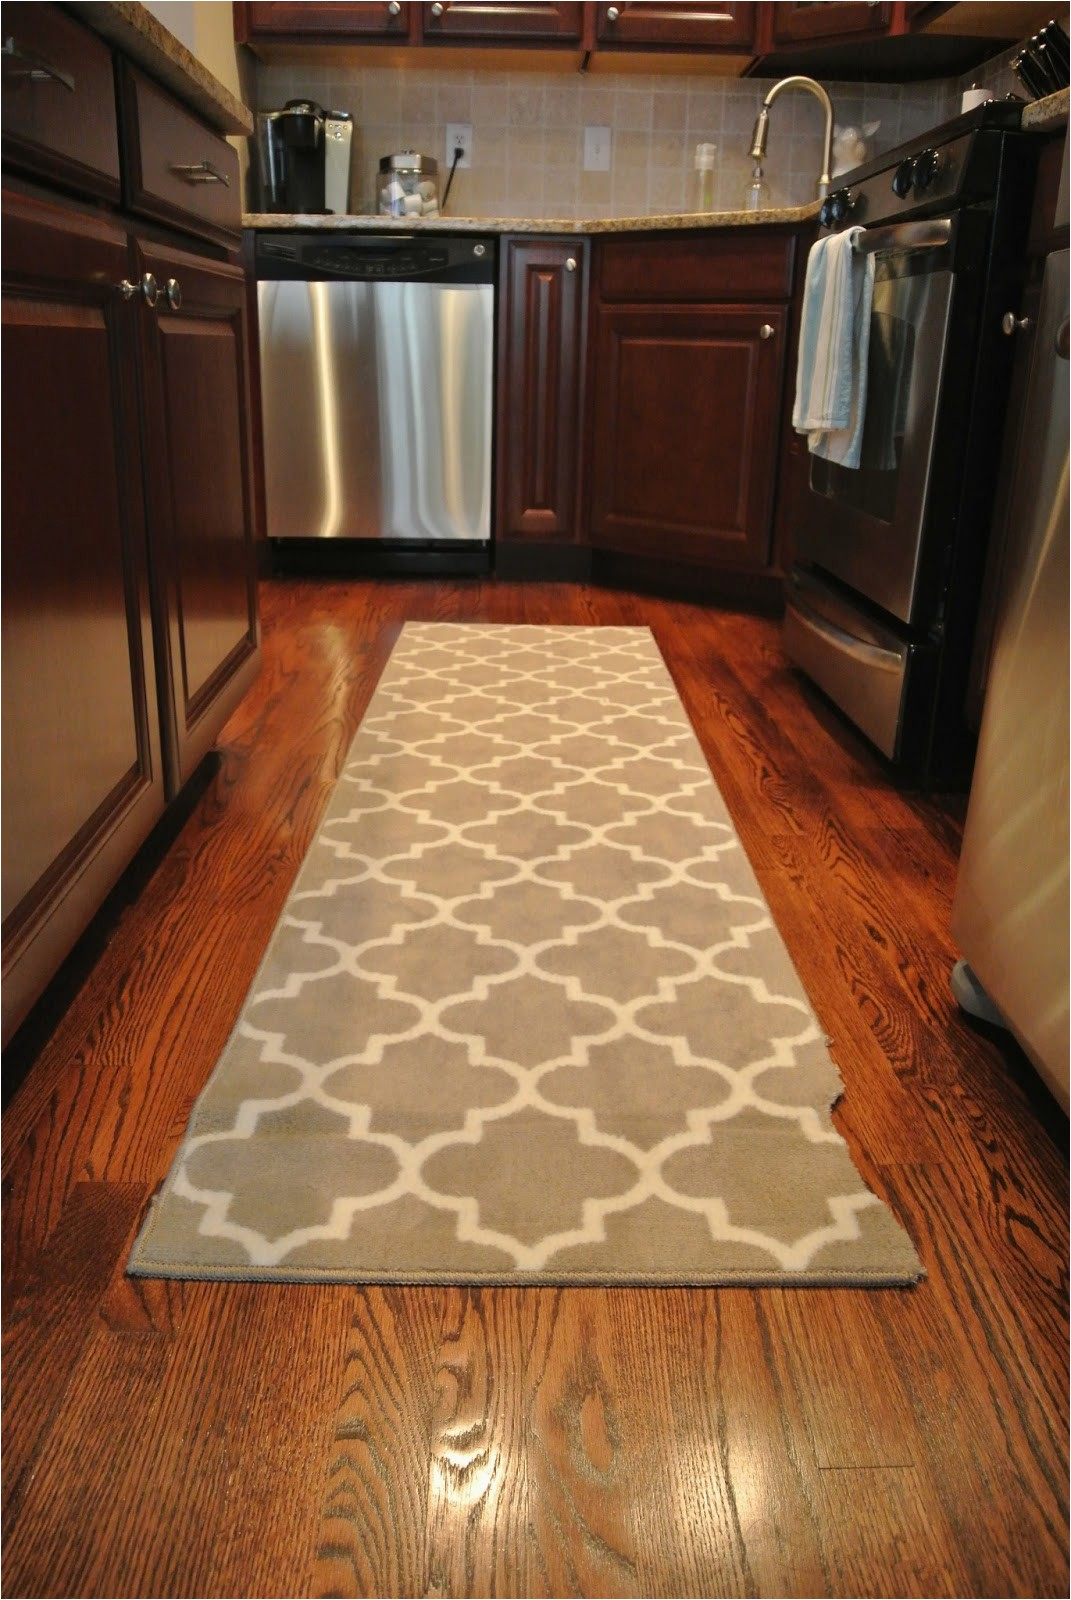 Target Bath Mats and Rugs Under Rug Non Slip Mat Decoration Inspiring Tar Bath Mat